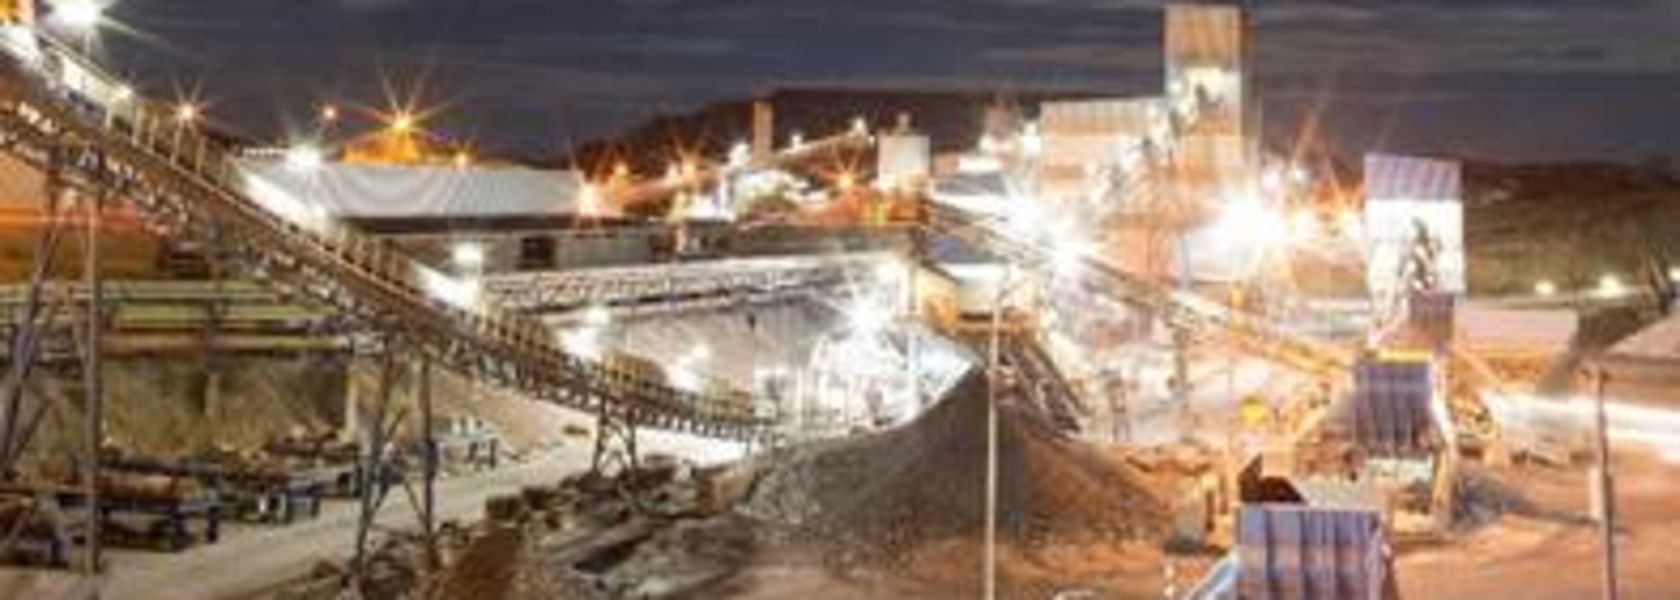 Metso to kit out Neves-Corvo expansion